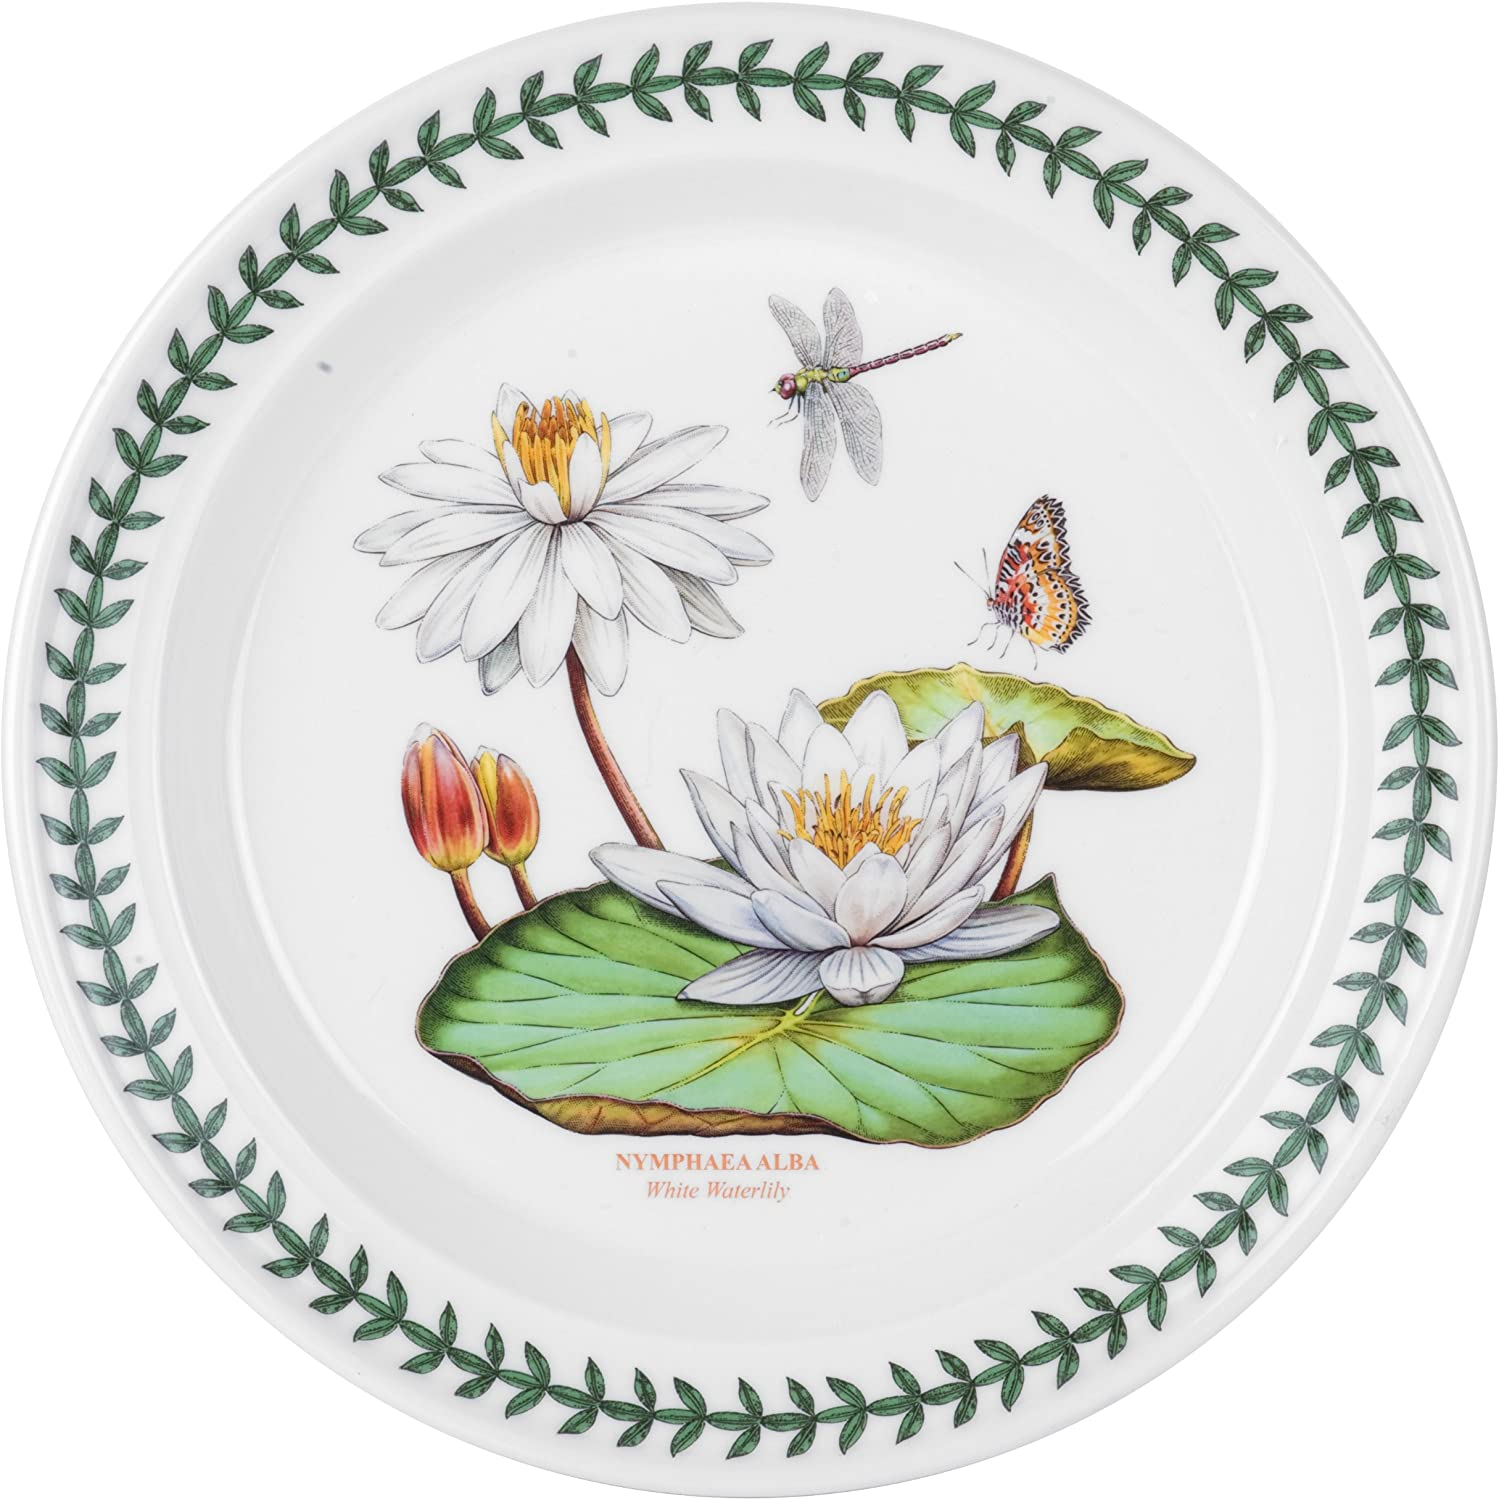 Portmeirion Exotic Botanic Garden Dinner Plate with White Water Lily Motif